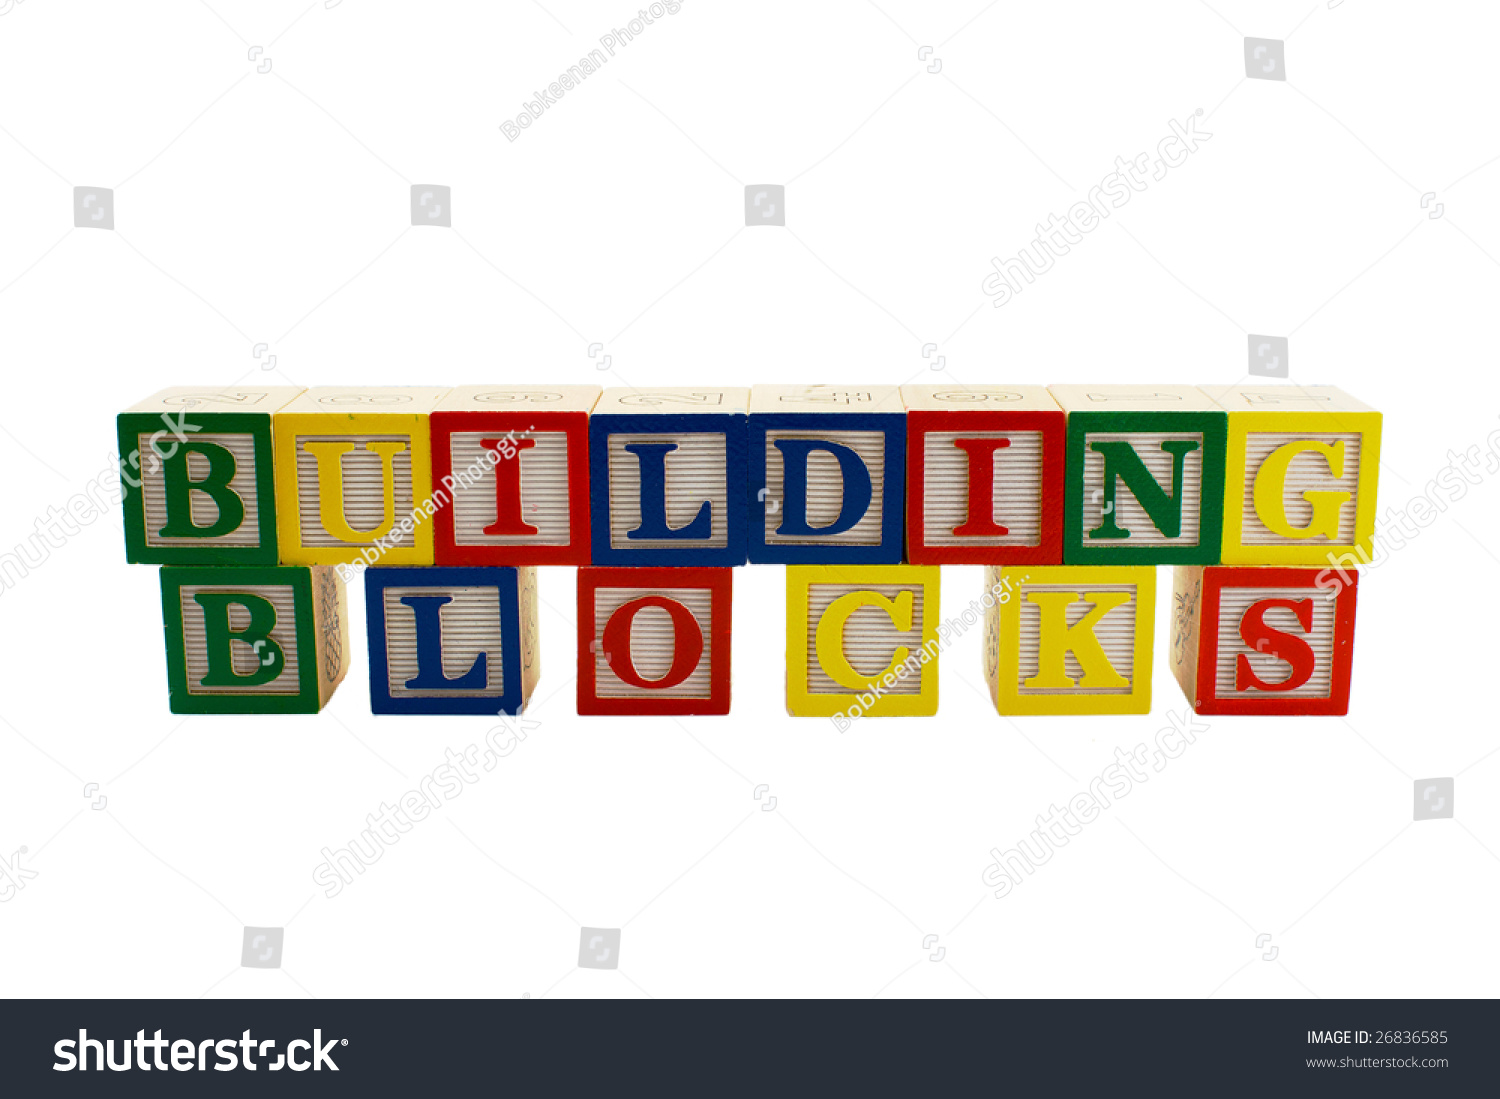 Vintage alphabet blocks spelling out the words building blocks stock